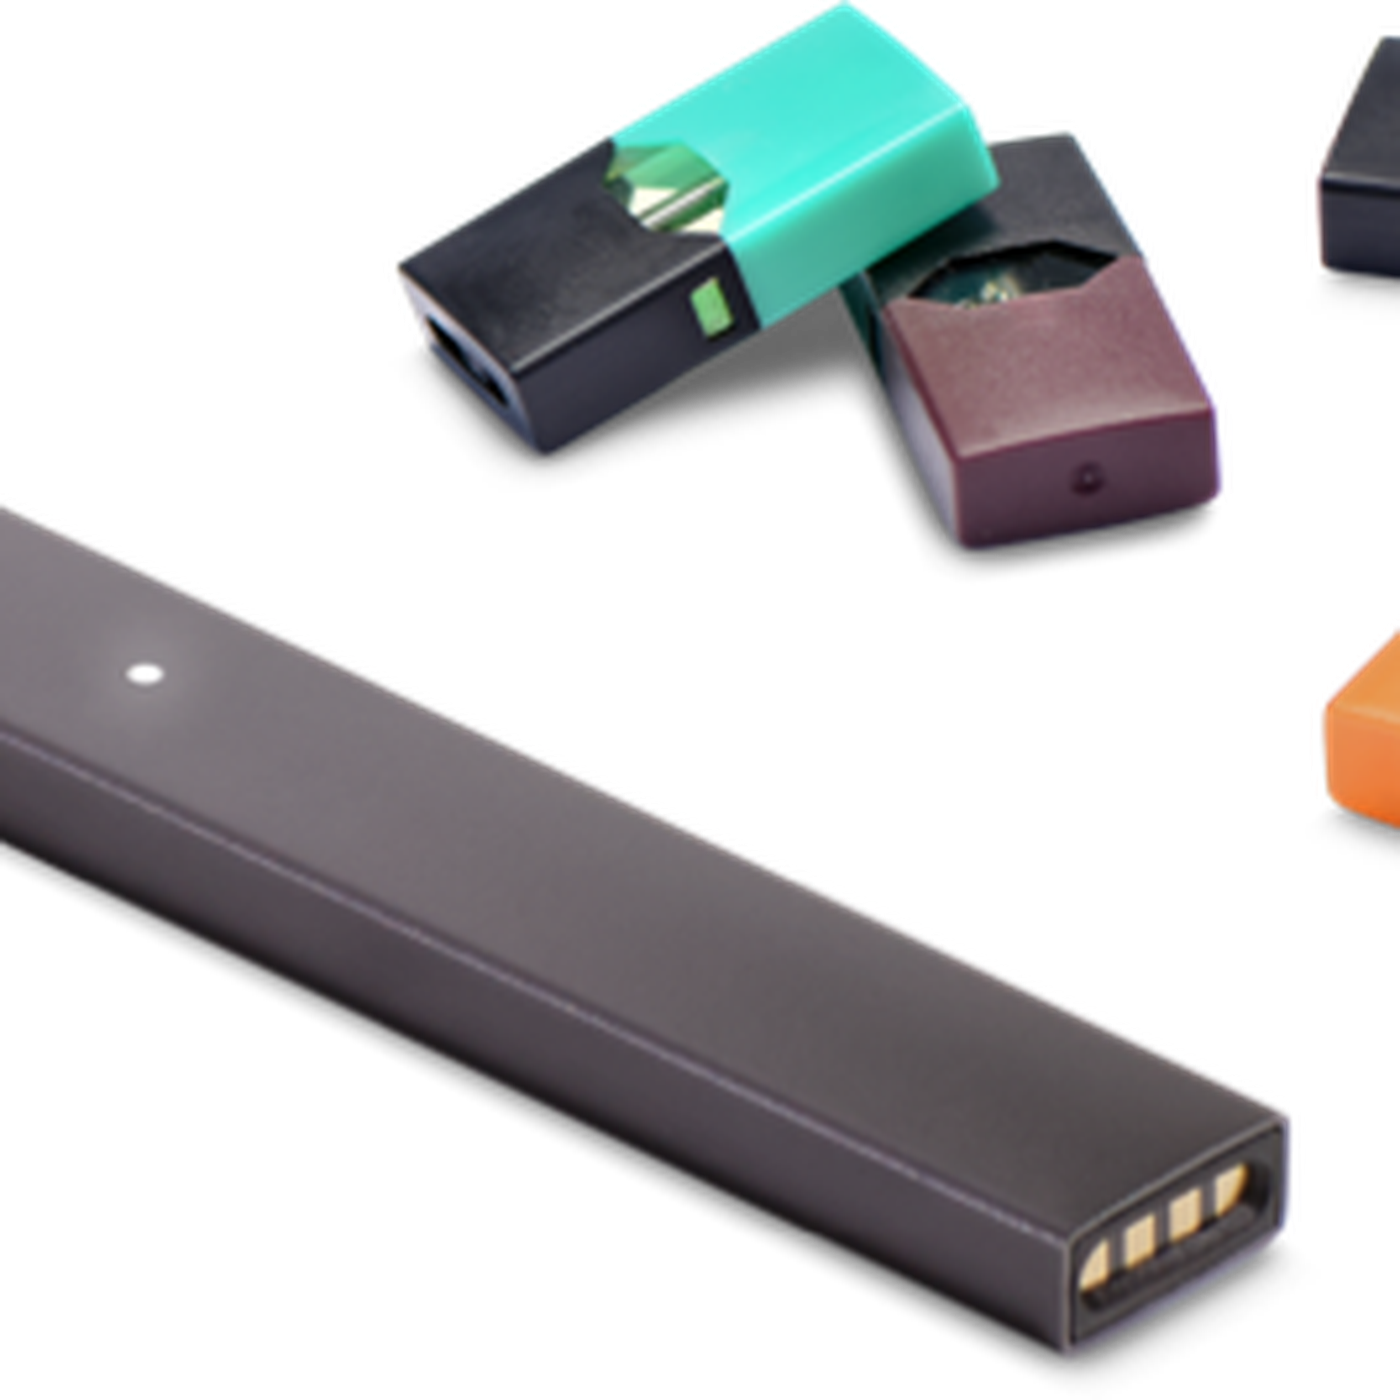 Juul transparent usb. The fda is coming